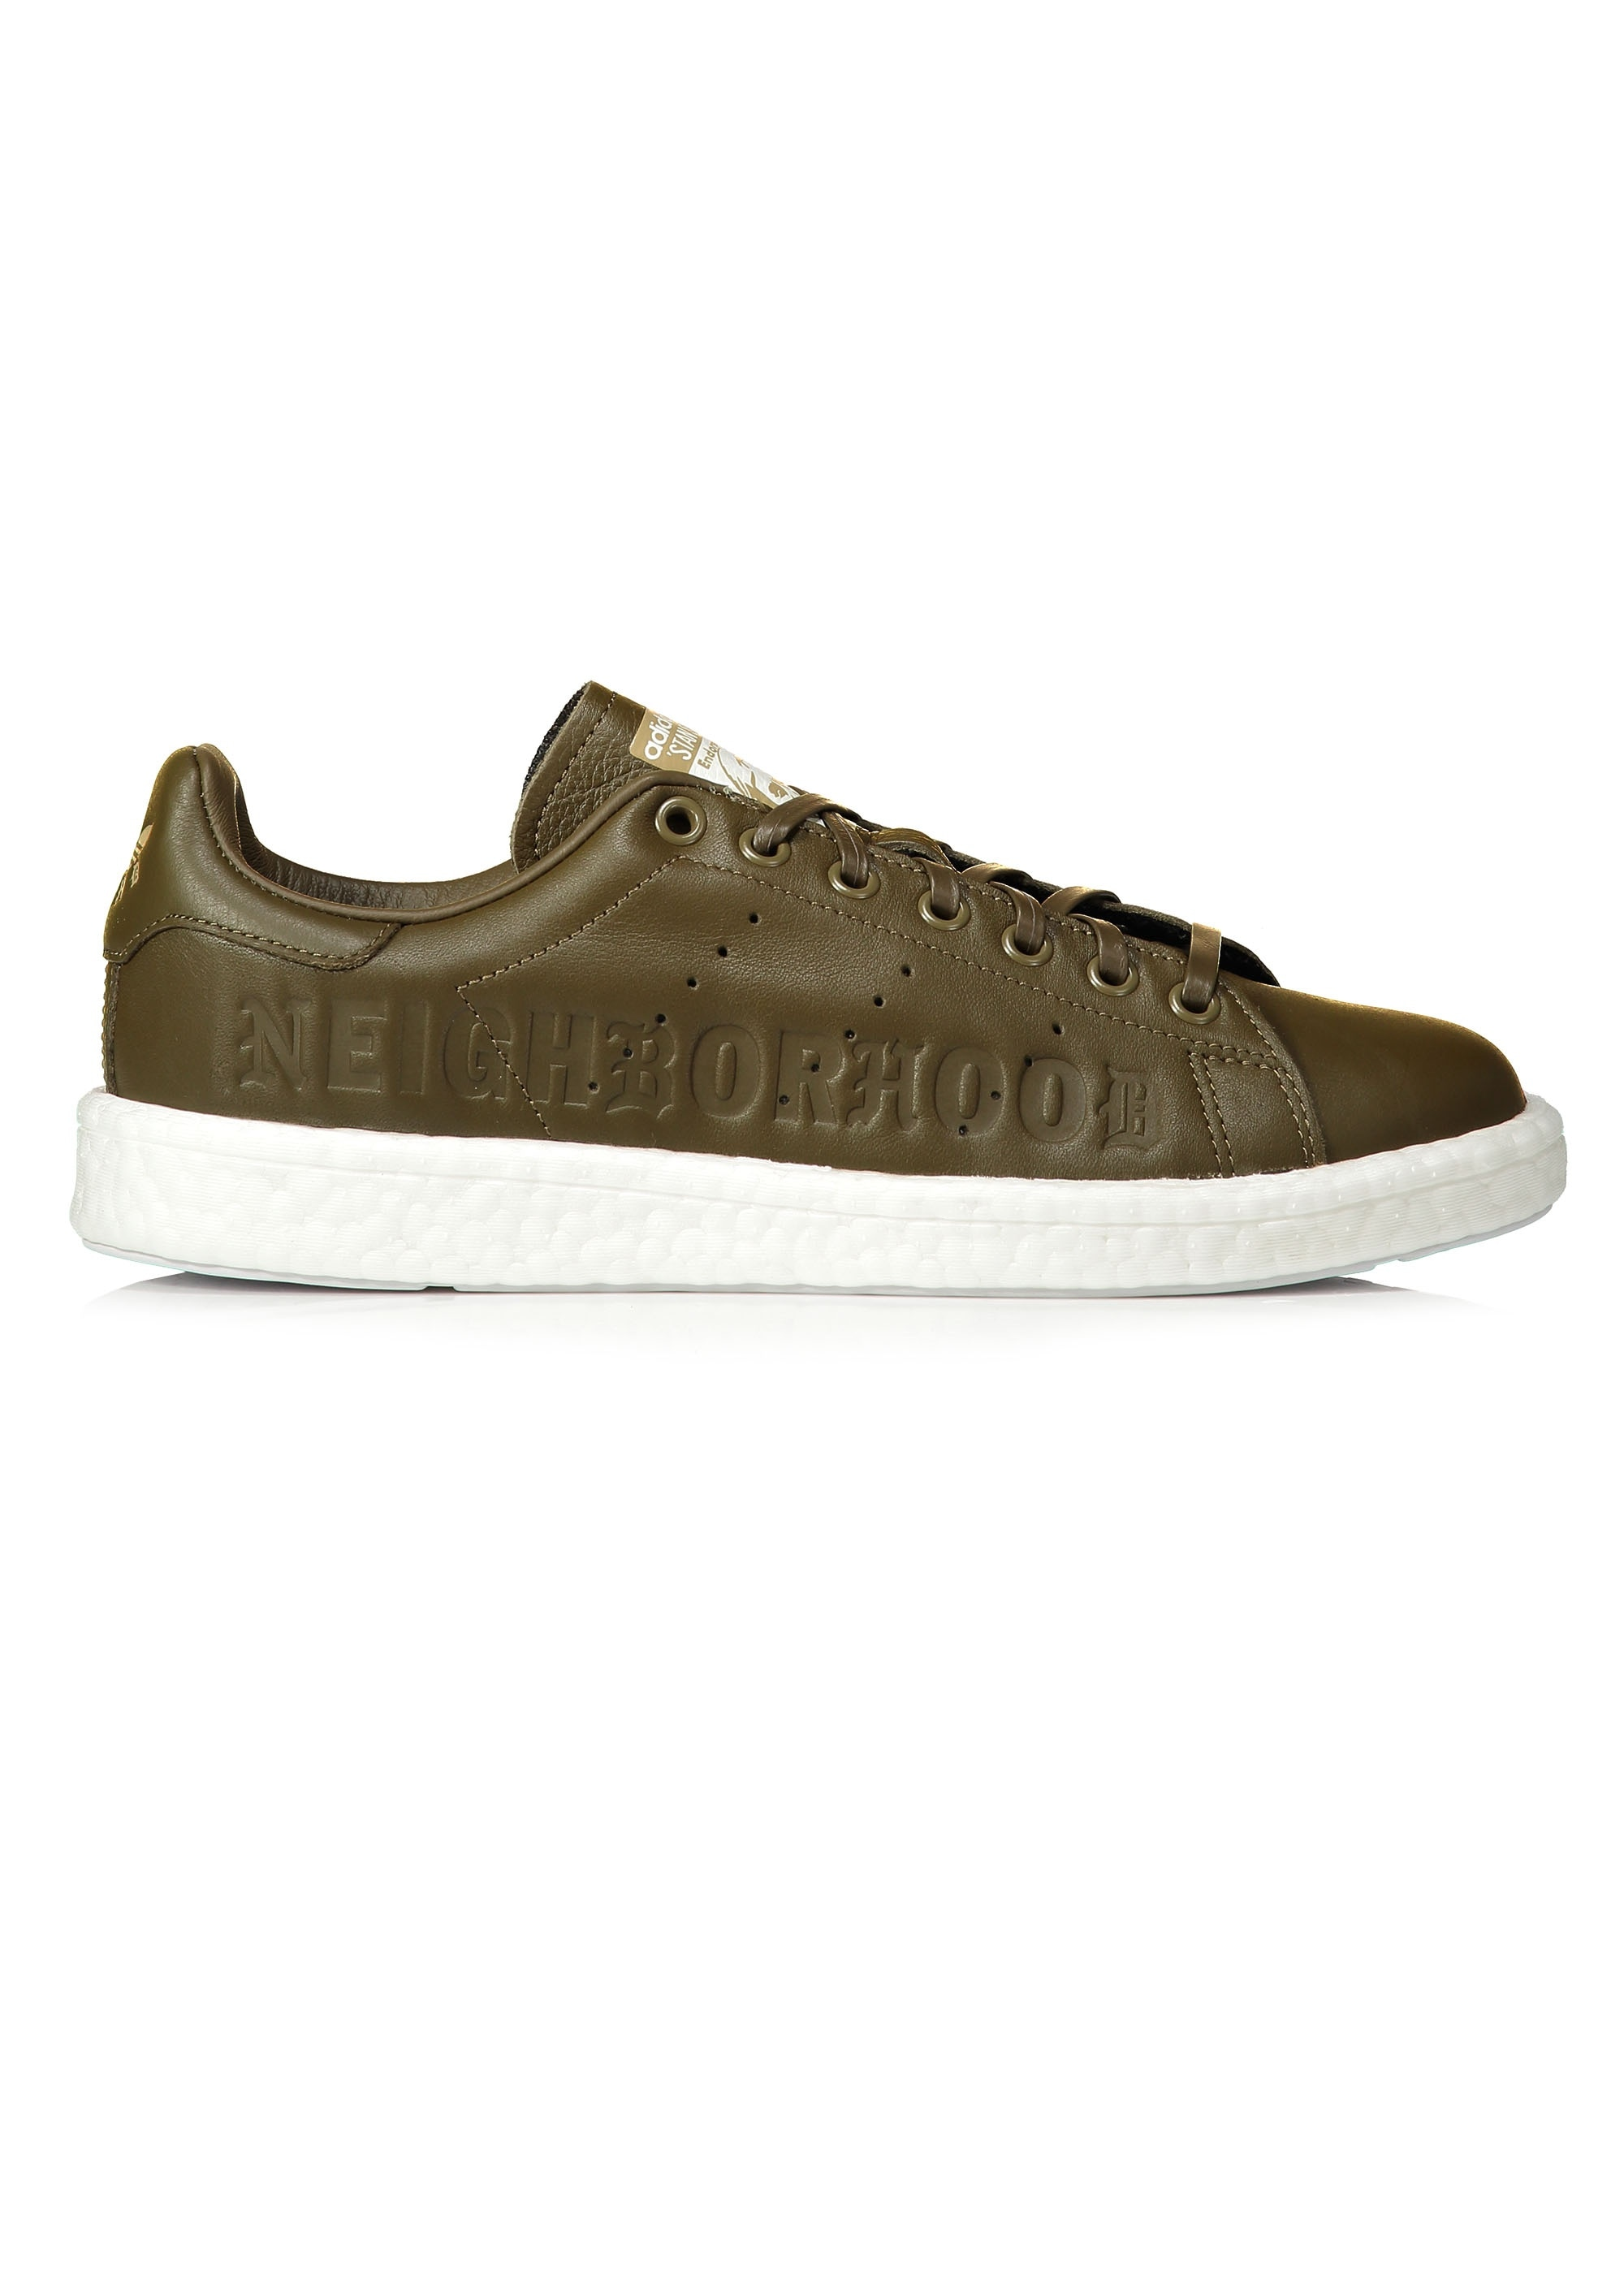 cheap for discount a7999 cf664 adidas Originals x Neighborhood Stan Smith Boost NBHD - Trace Olive